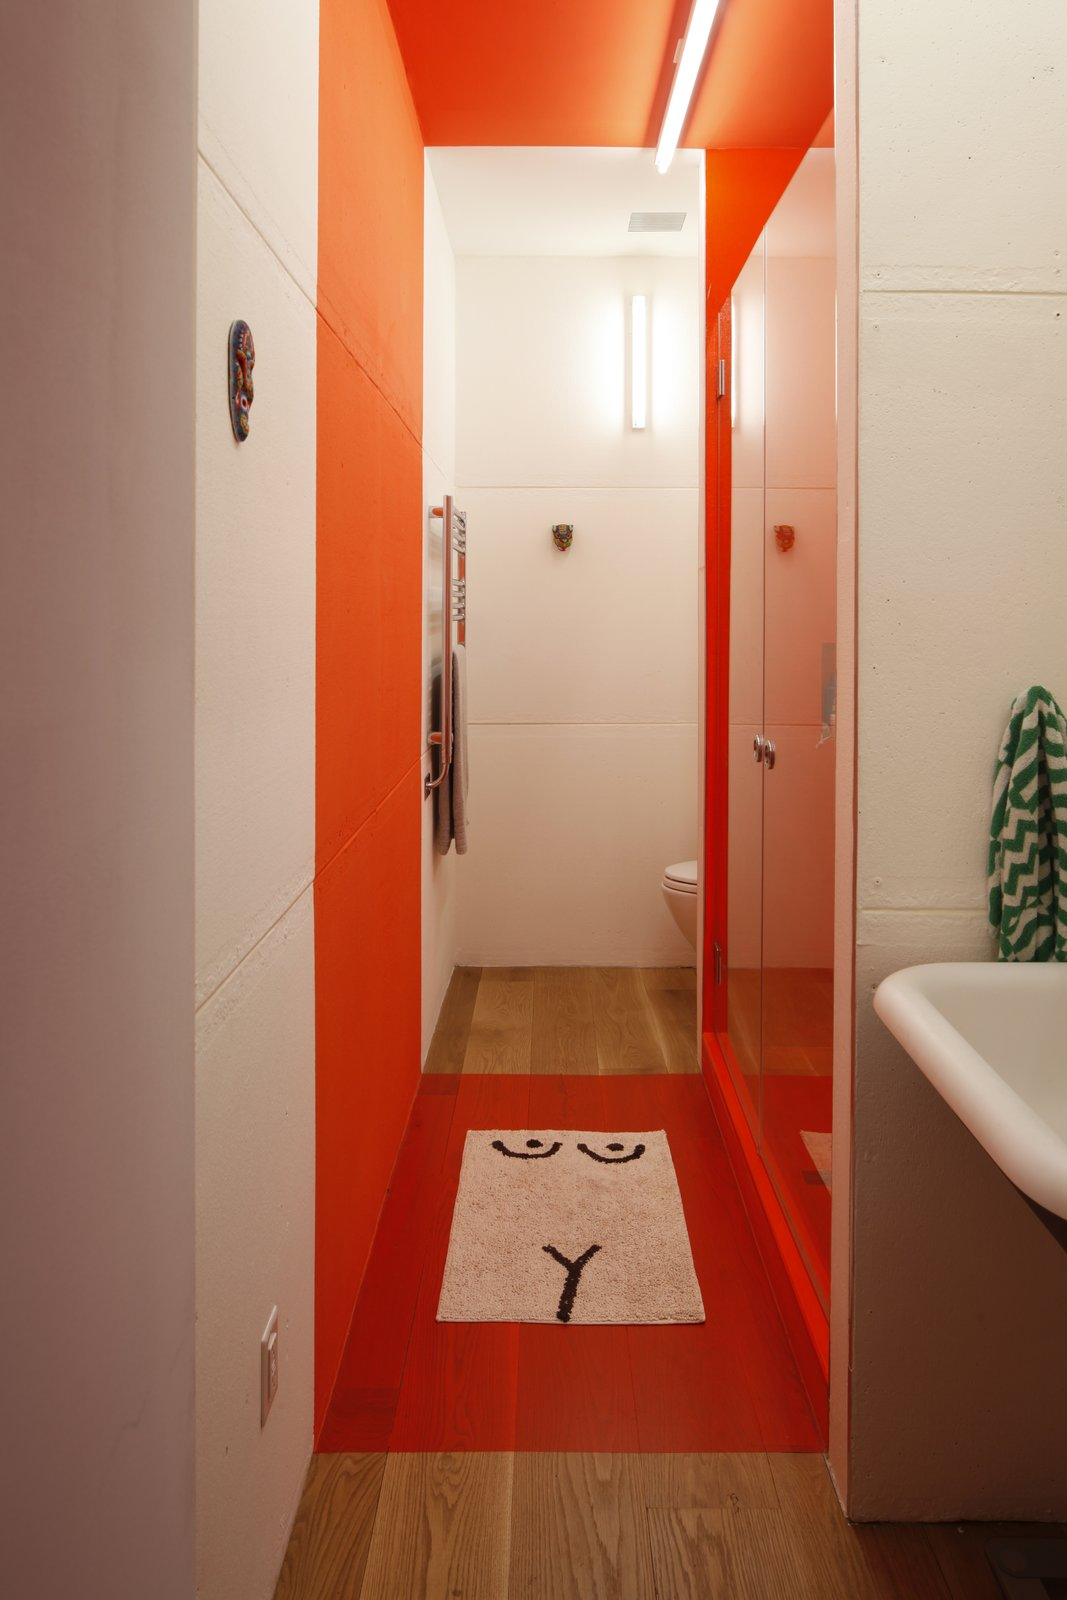 A Brooklyn Carriage House Is Revamped With a Penthouse Made From Shipping Containers - Photo 1 of 12